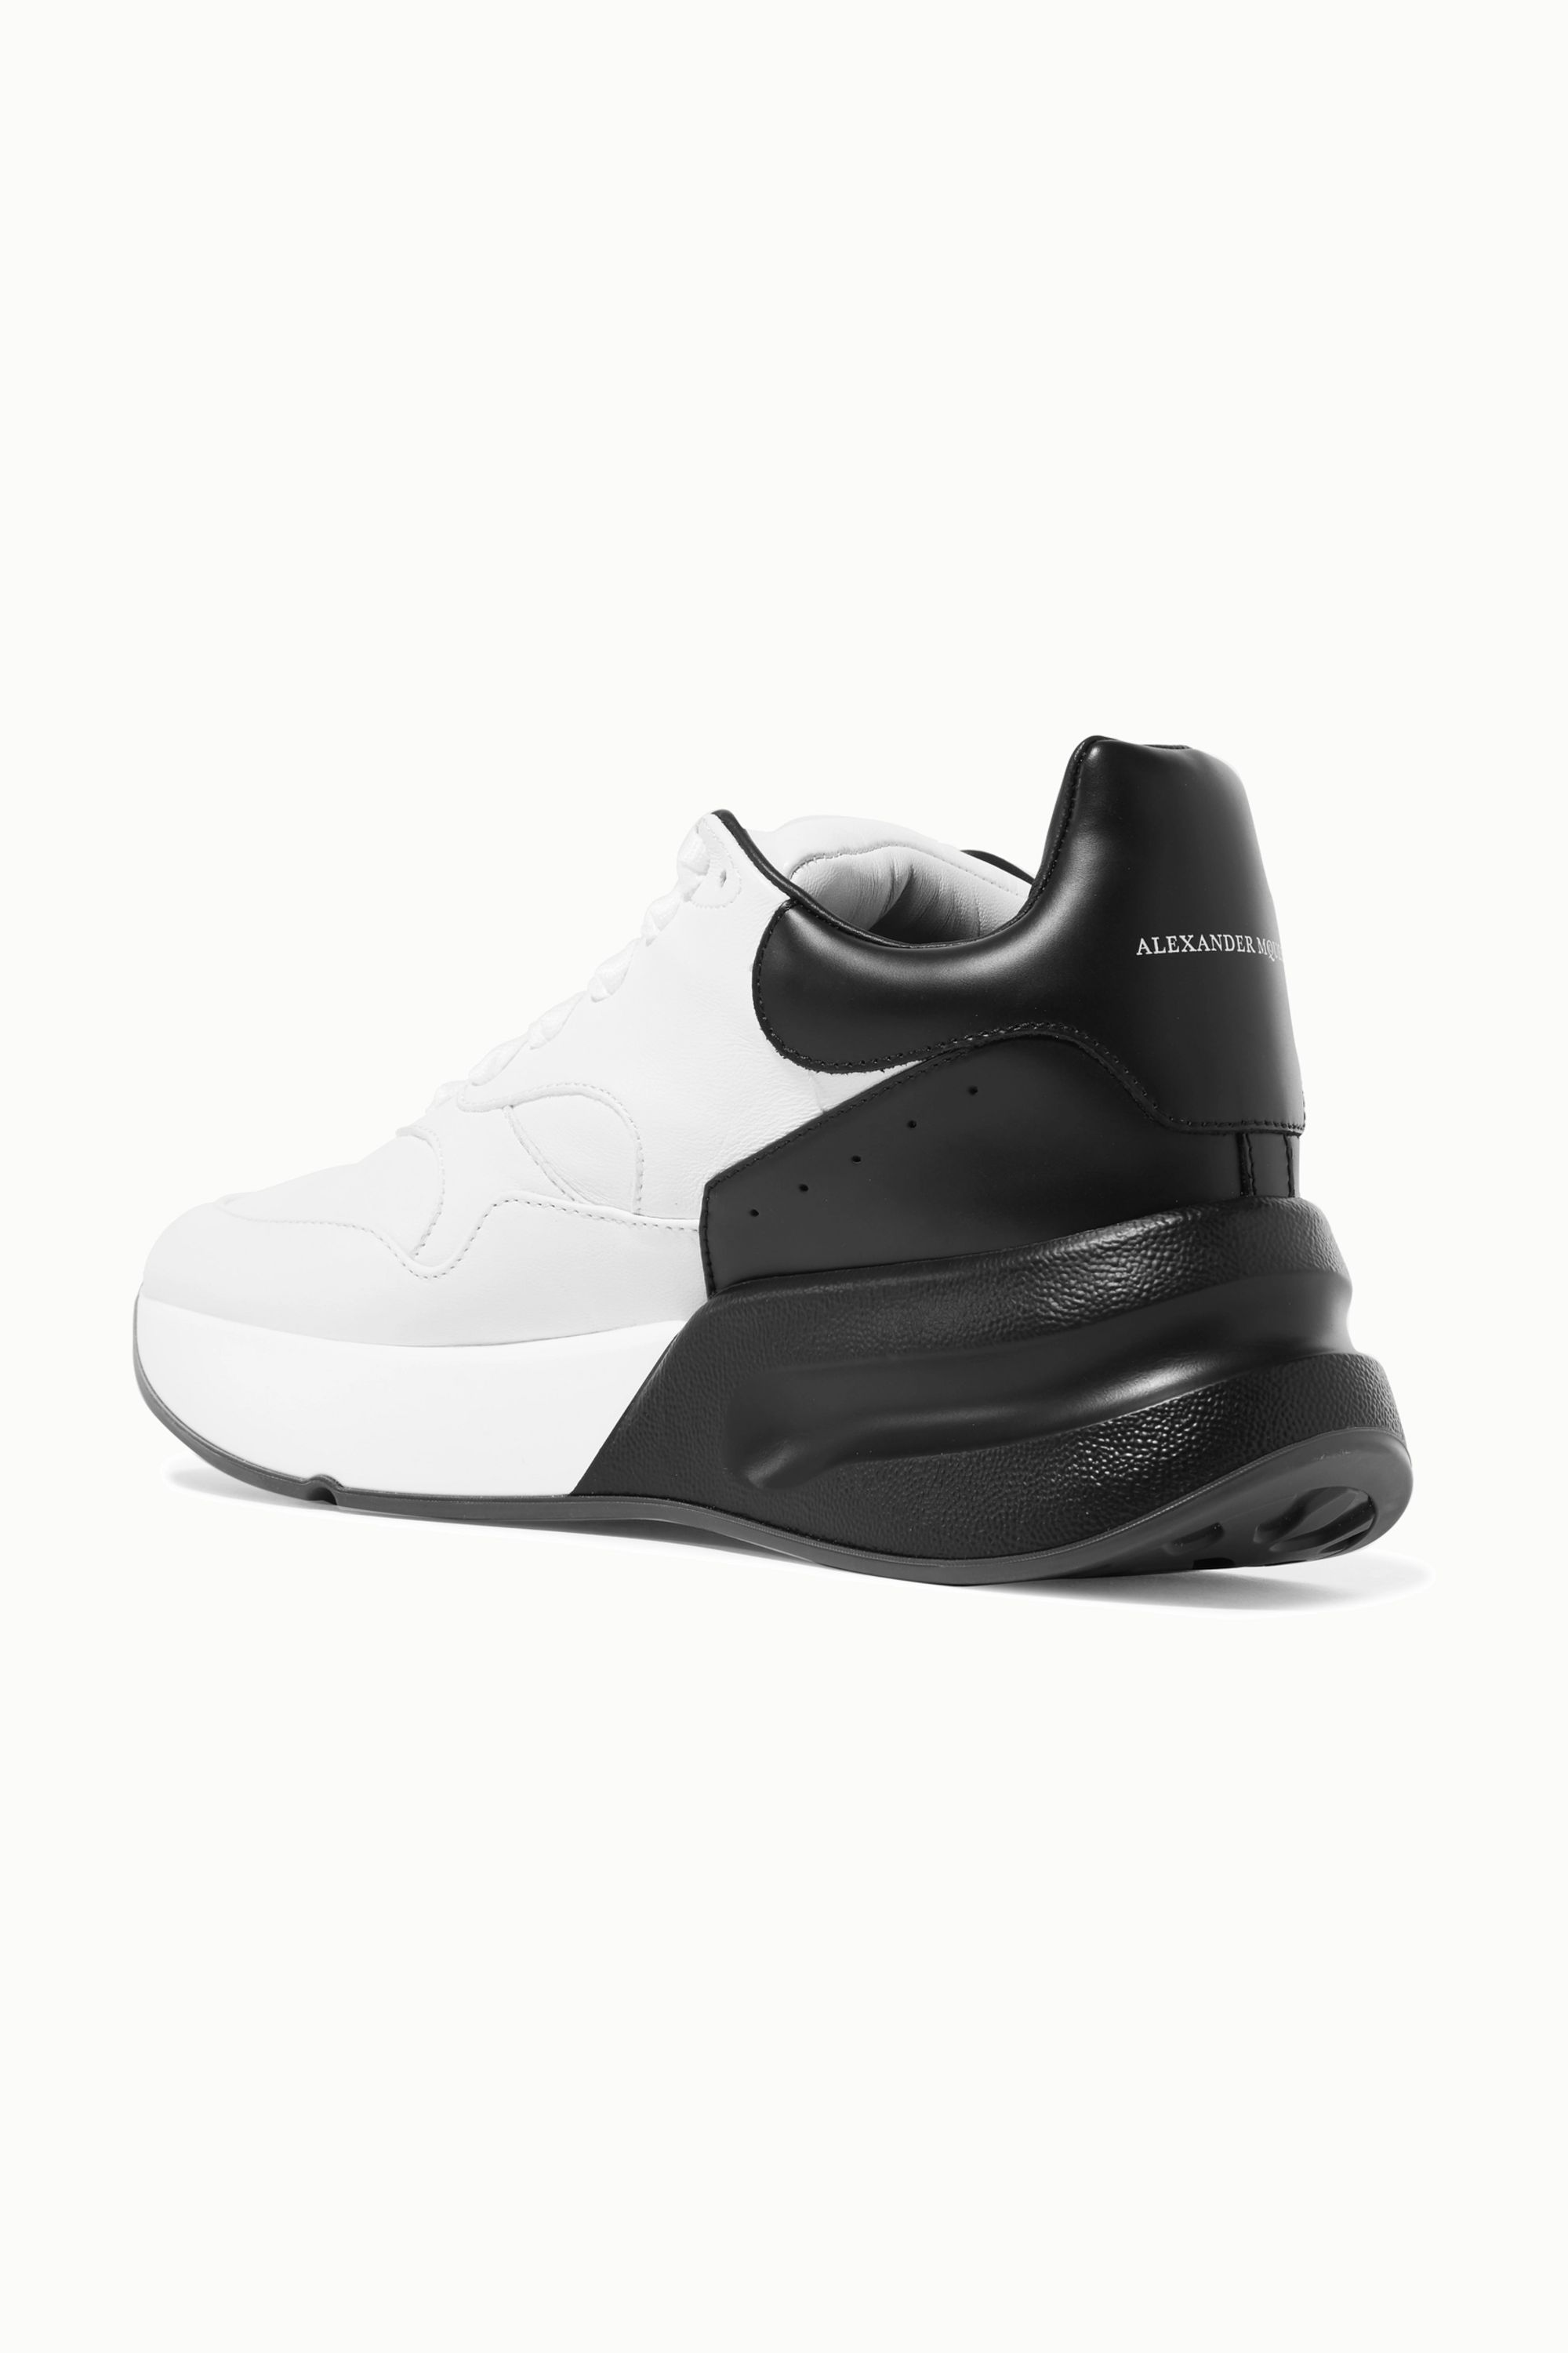 Alexander McQueen Two-tone leather exaggerated-sole sneakers